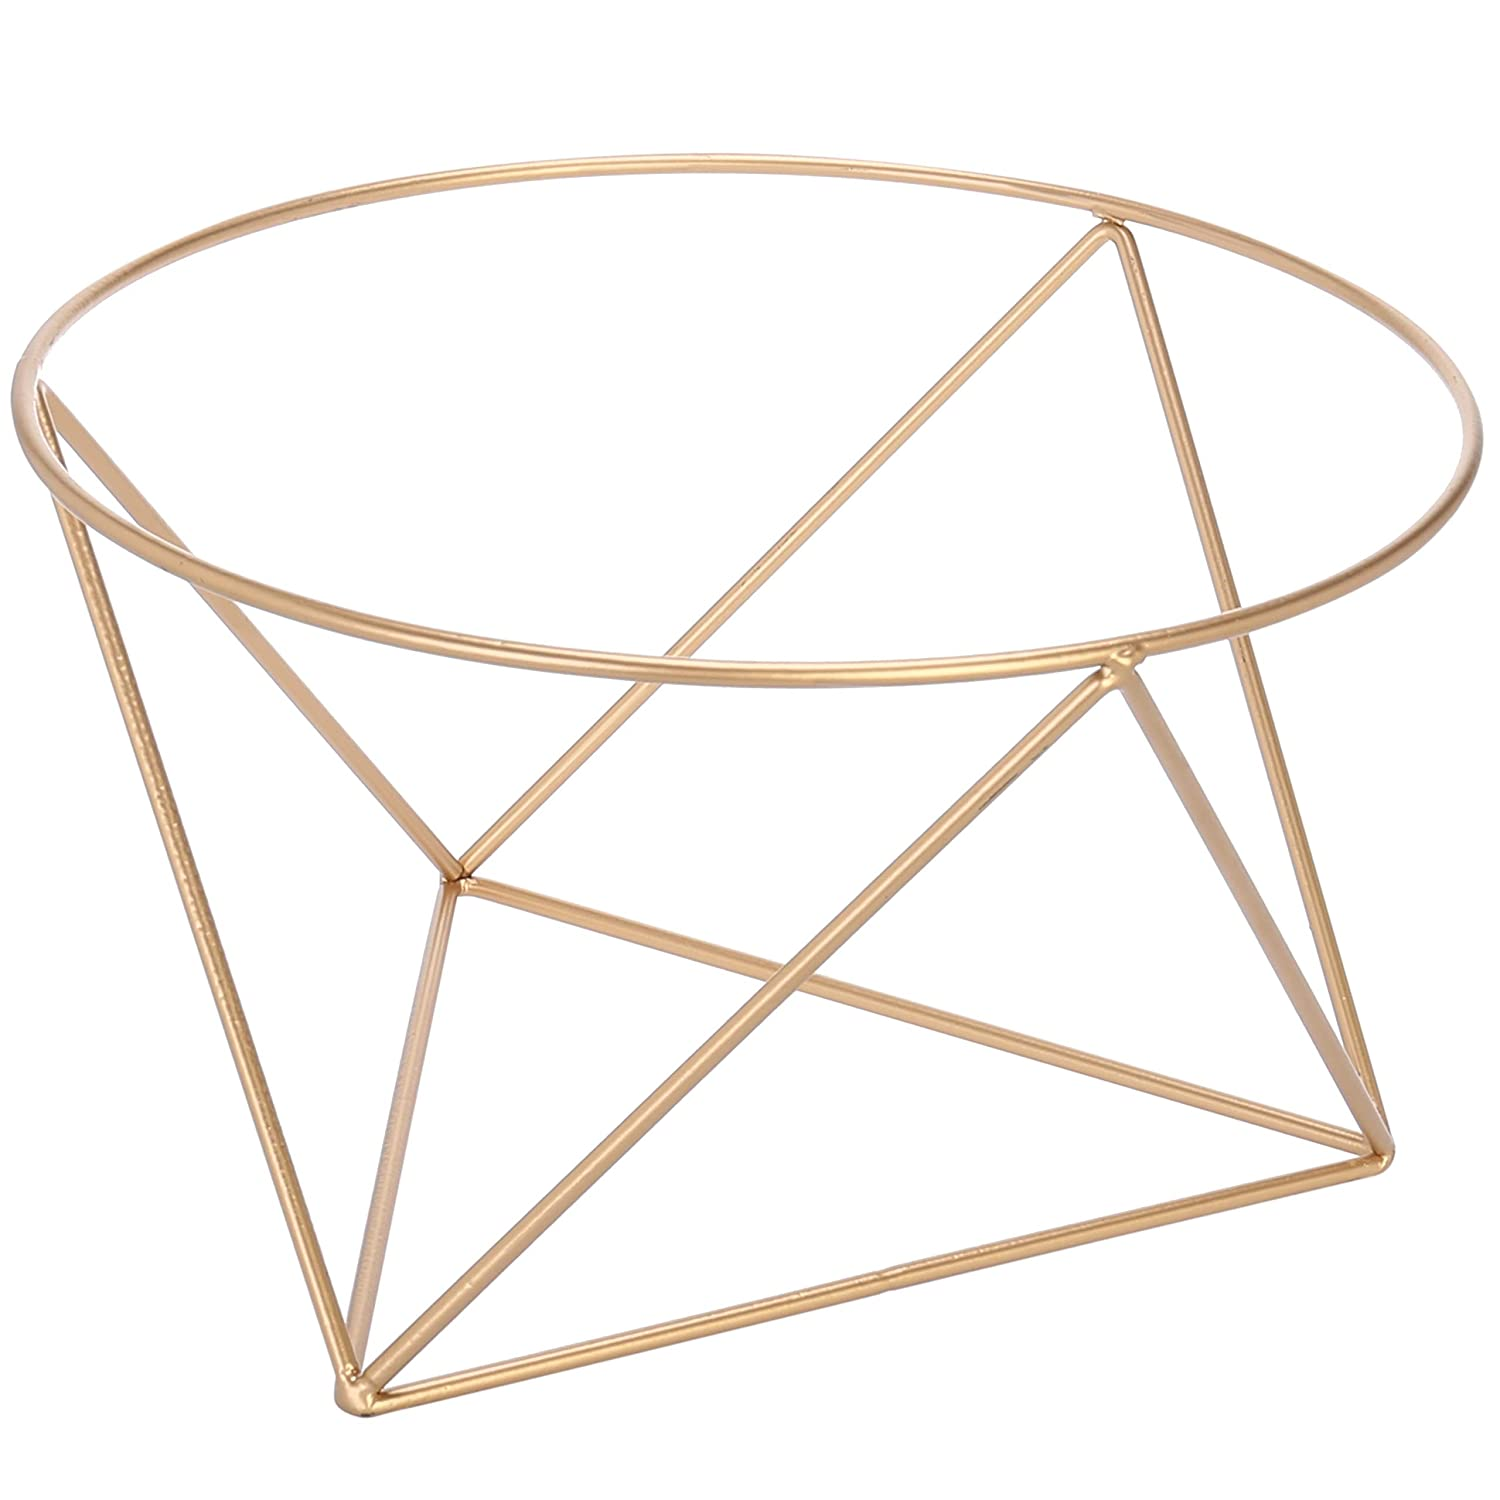 MyGift 10-Inch Geometric Gold-Tone Metal Wire Pizza Tray Riser Stand